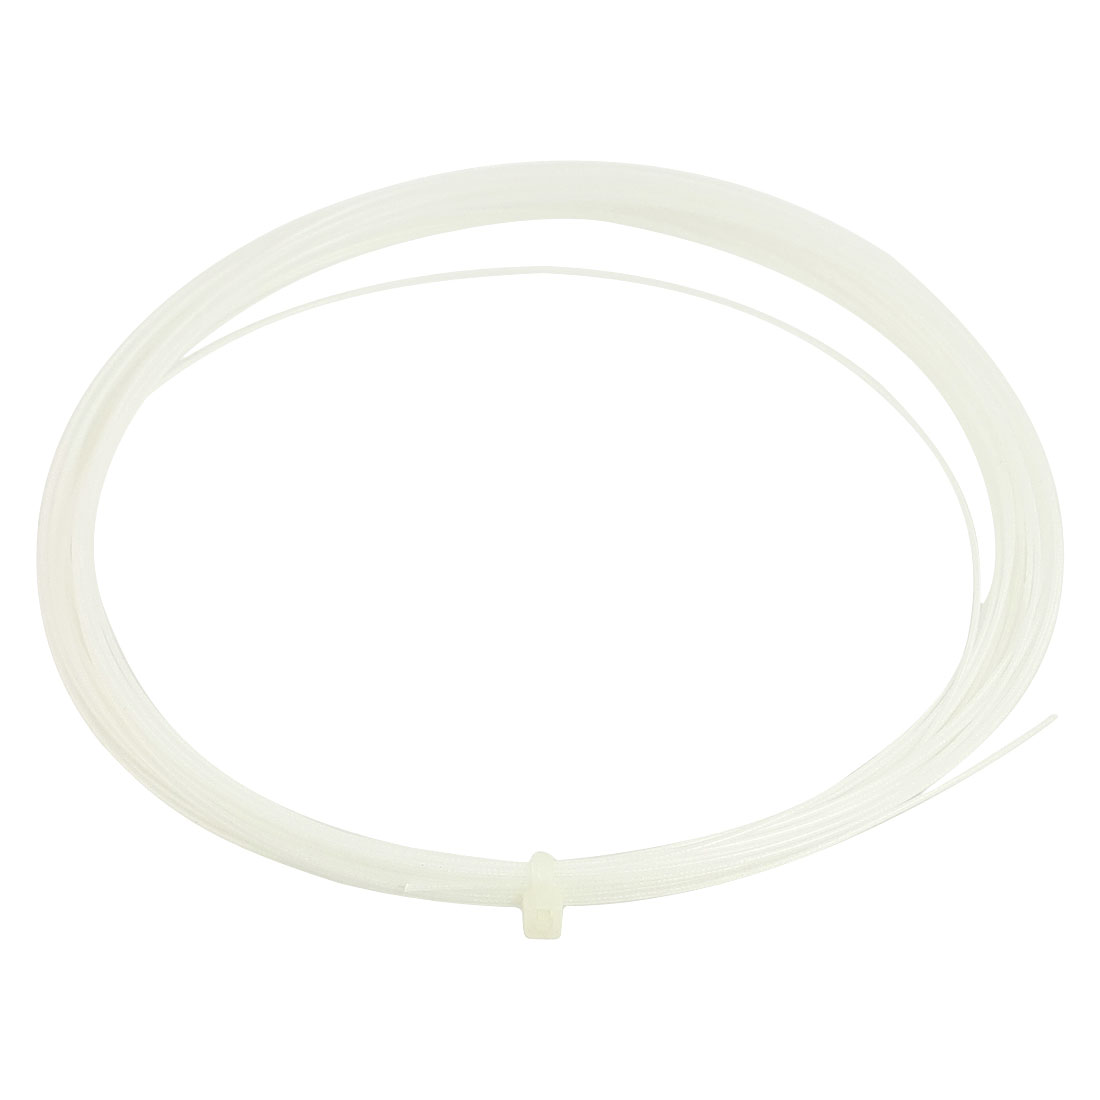 0.75mm Gauge Sports White Badminton Racket Racquet String 10M